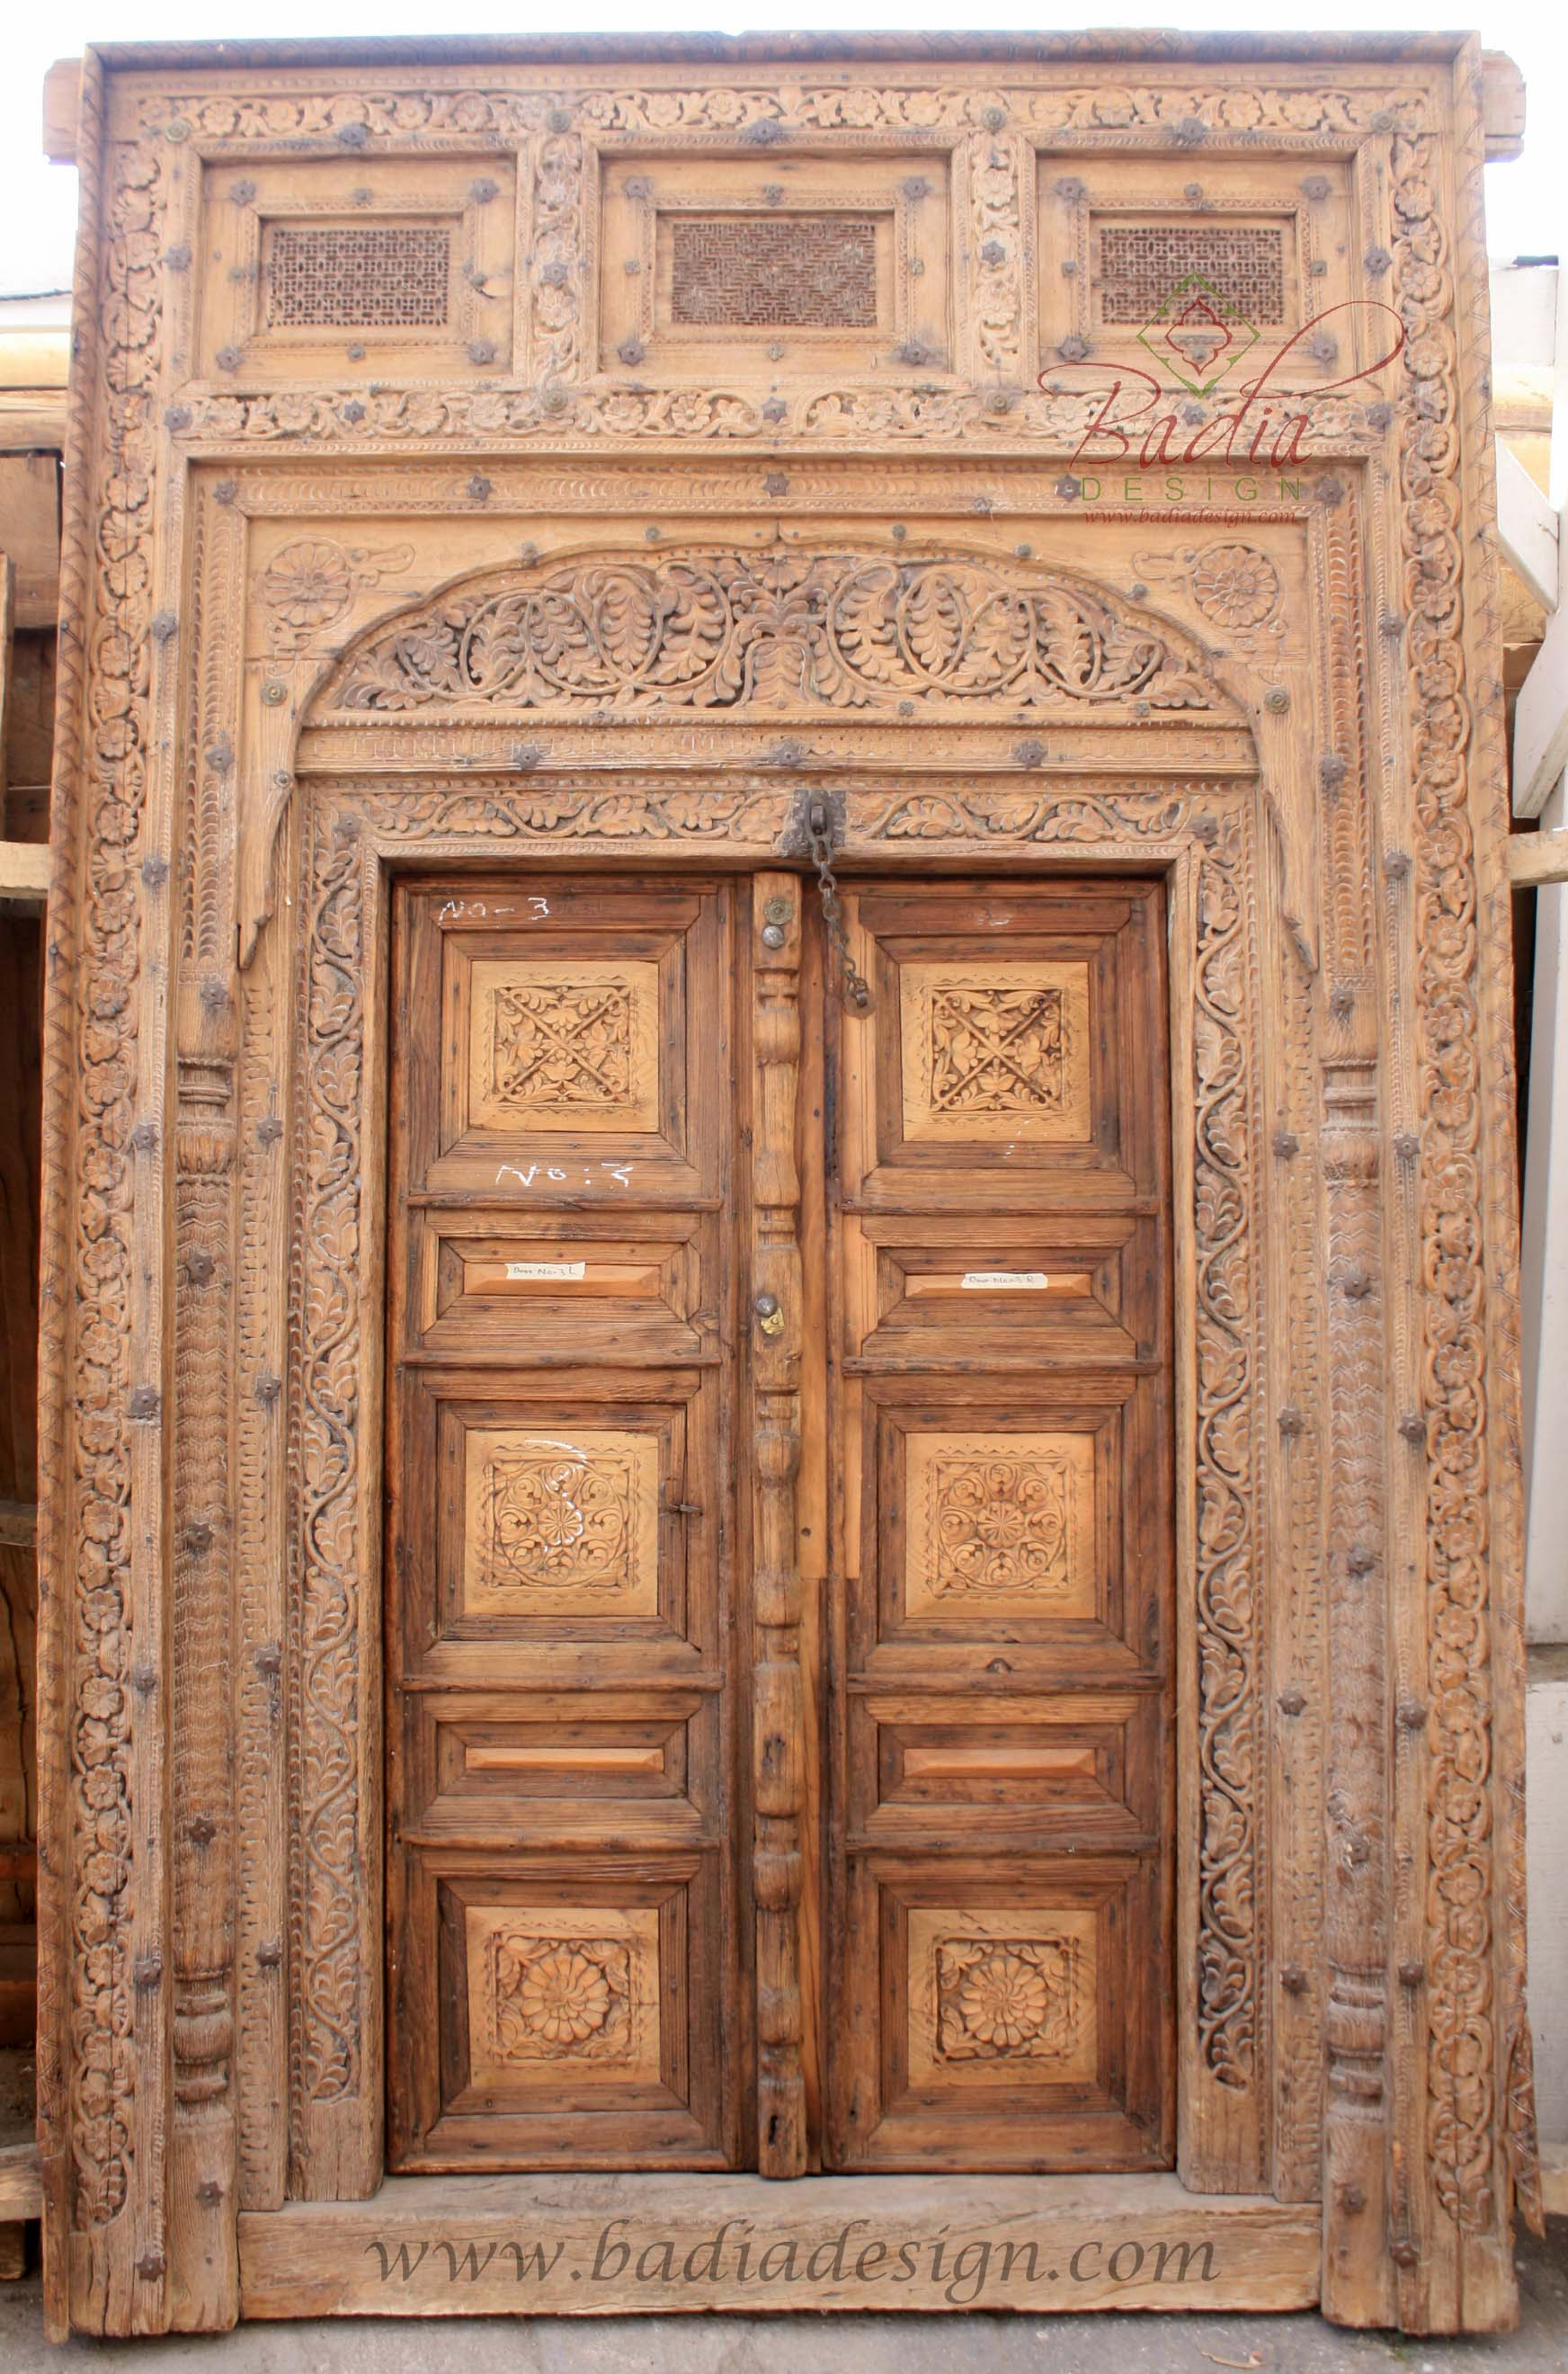 large-vintage-wooden-door-cwd012.jpg